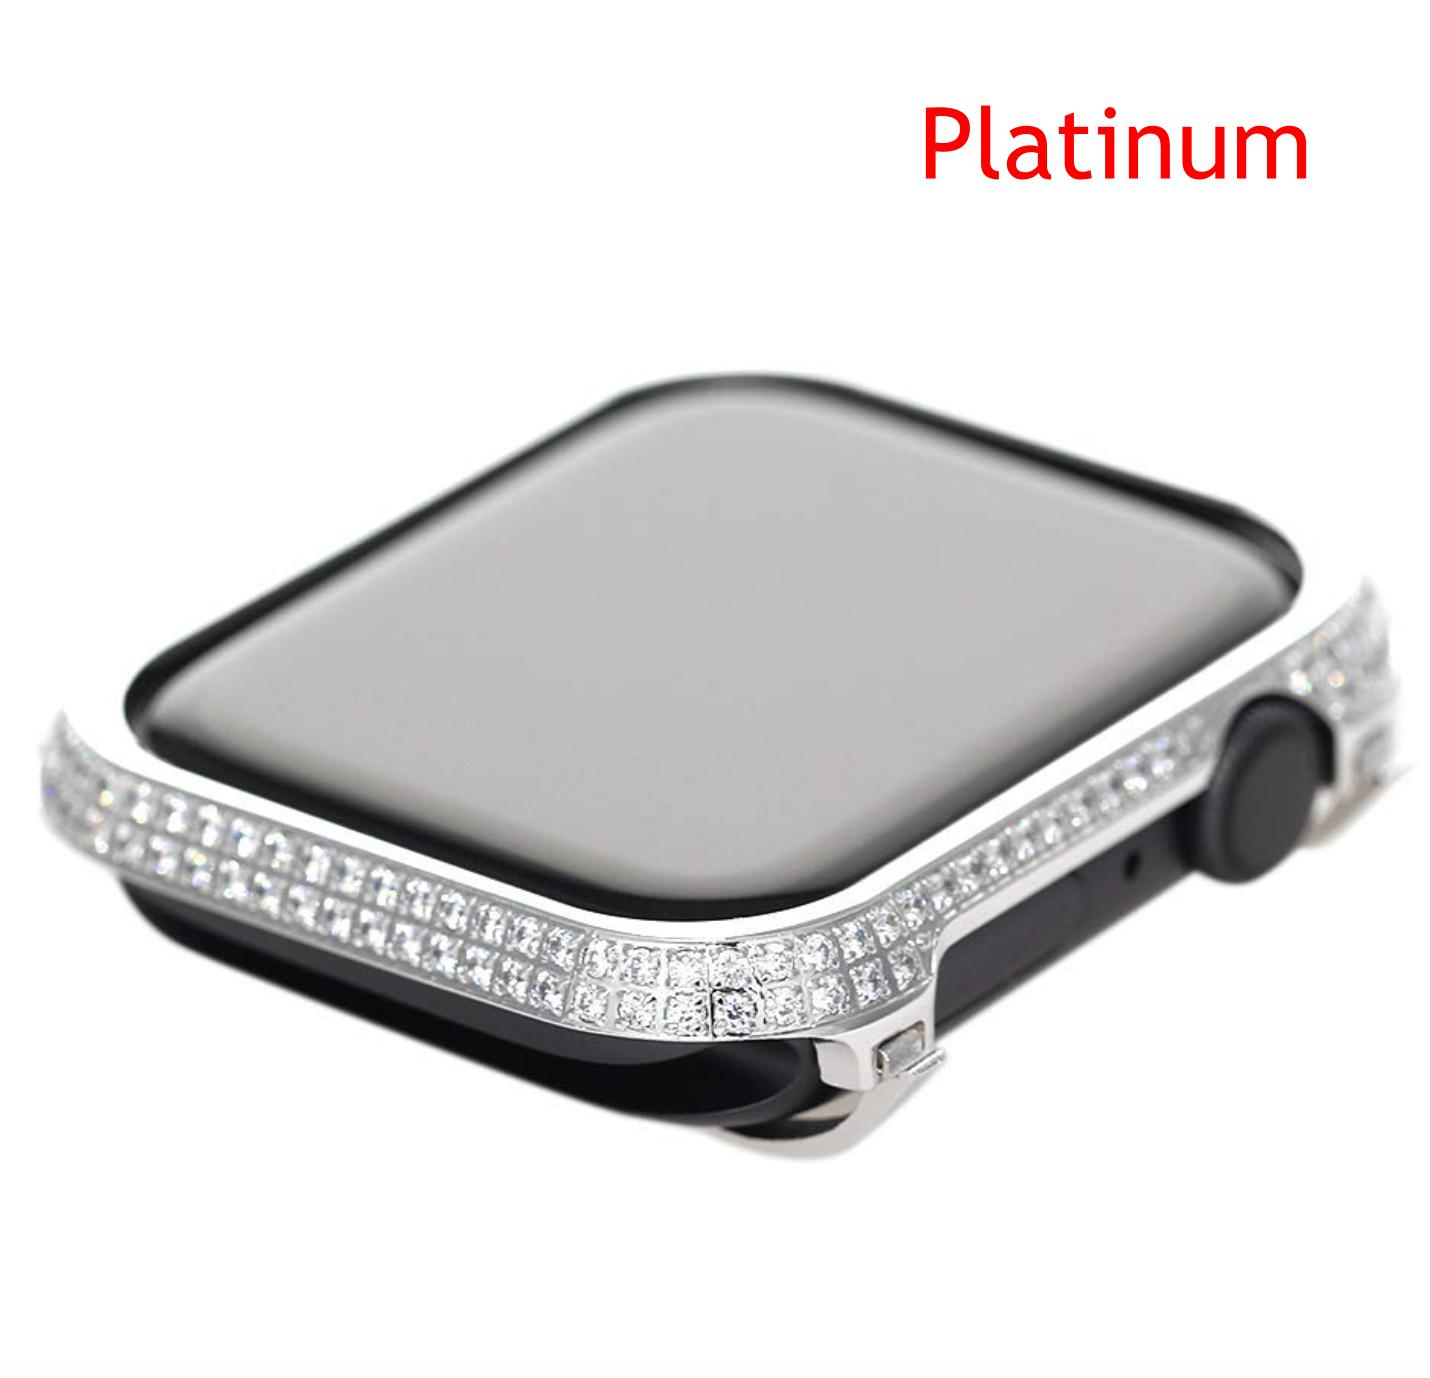 Prix Caisse A Pomme smart watch diamants noirs affaire-40mm 44mm handwork incrusté de caisse en  cristal strass pour apple watch série 4